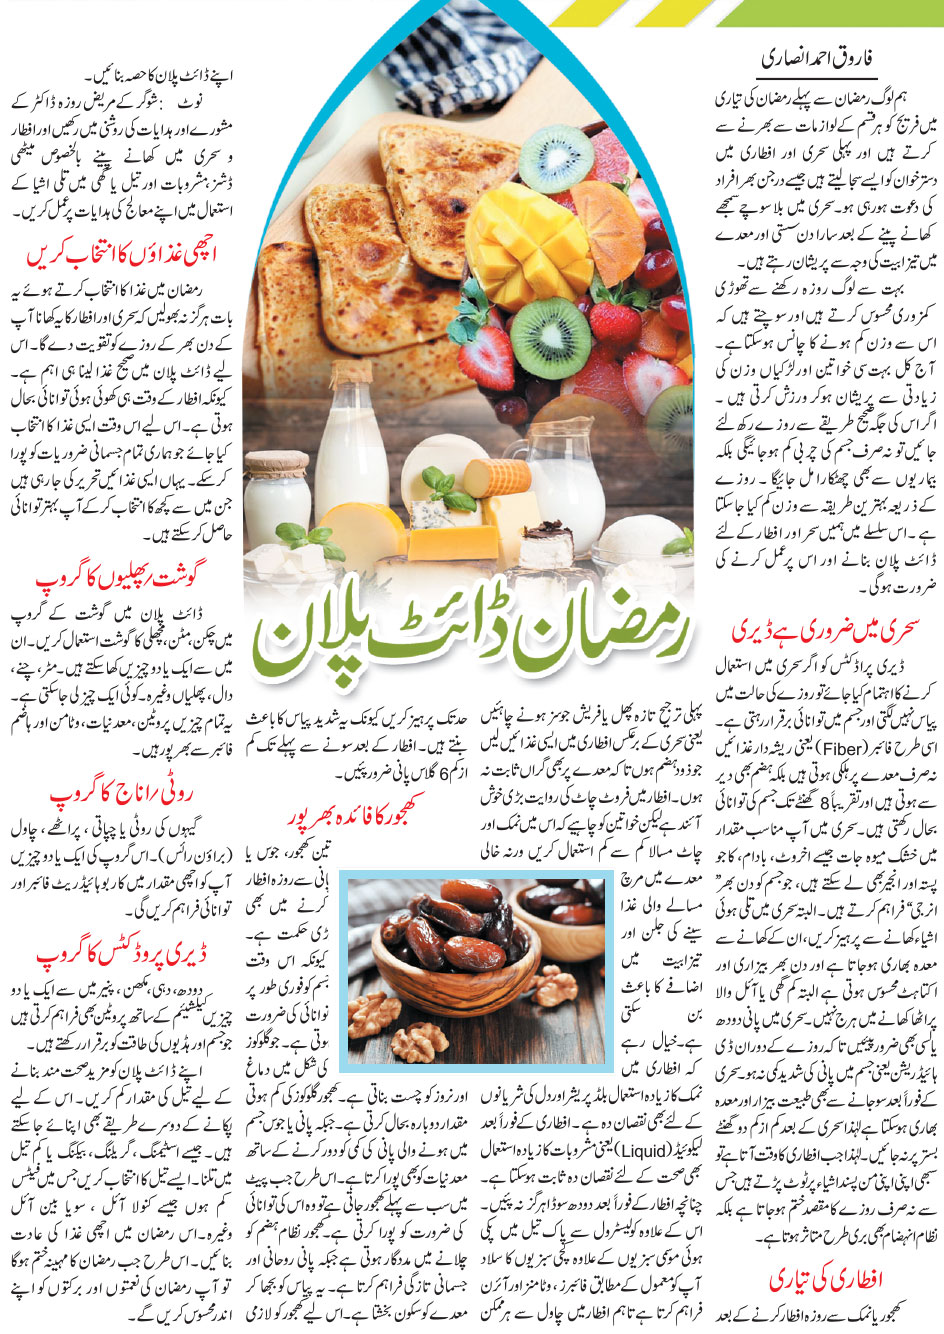 Ramadan Diet Plan For Weight Loss in Urdu